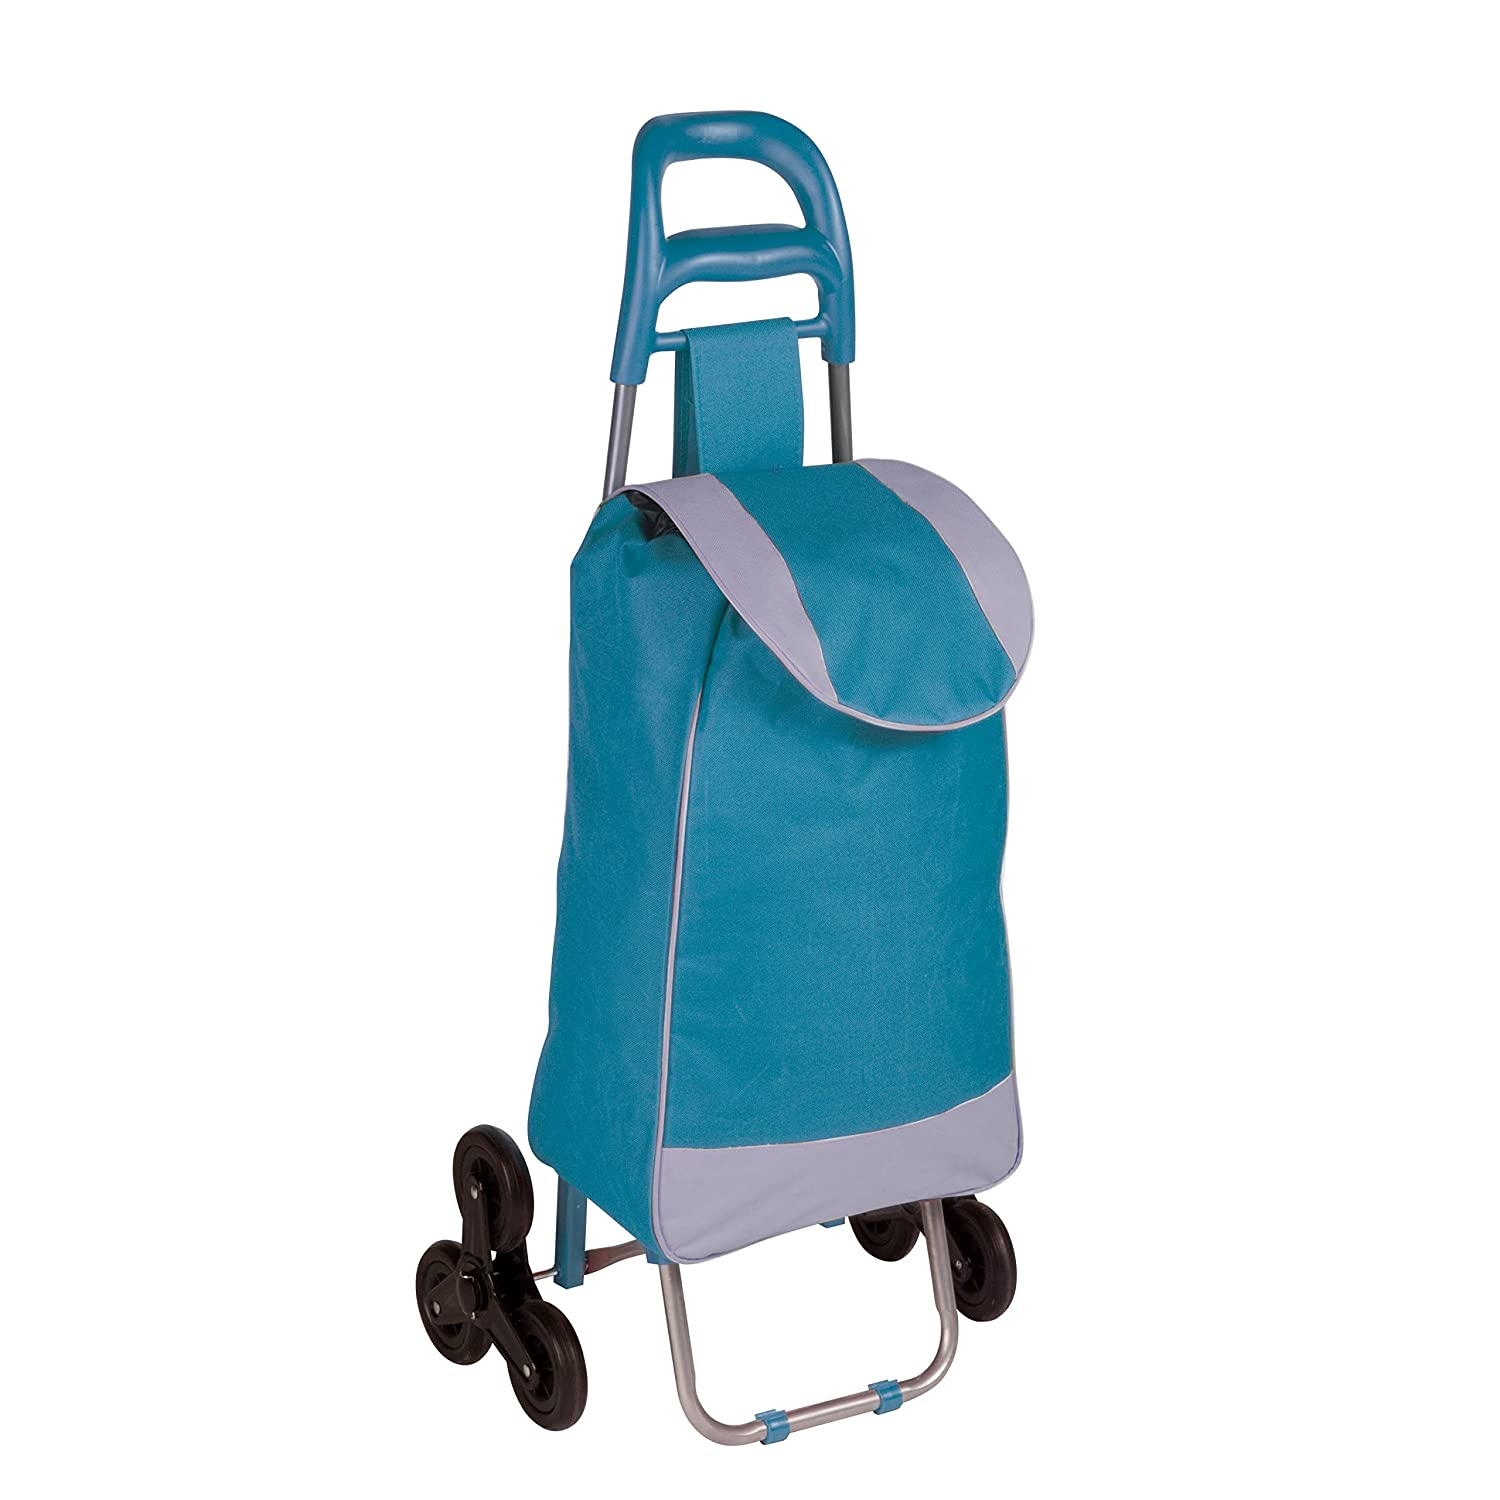 Amazon.com - Honey-Can-Do CRT-03932 Large Rolling Knapsack Bag Cart with Tri-Wheels for Steps, Holds up to 40-Pounds, Blue -